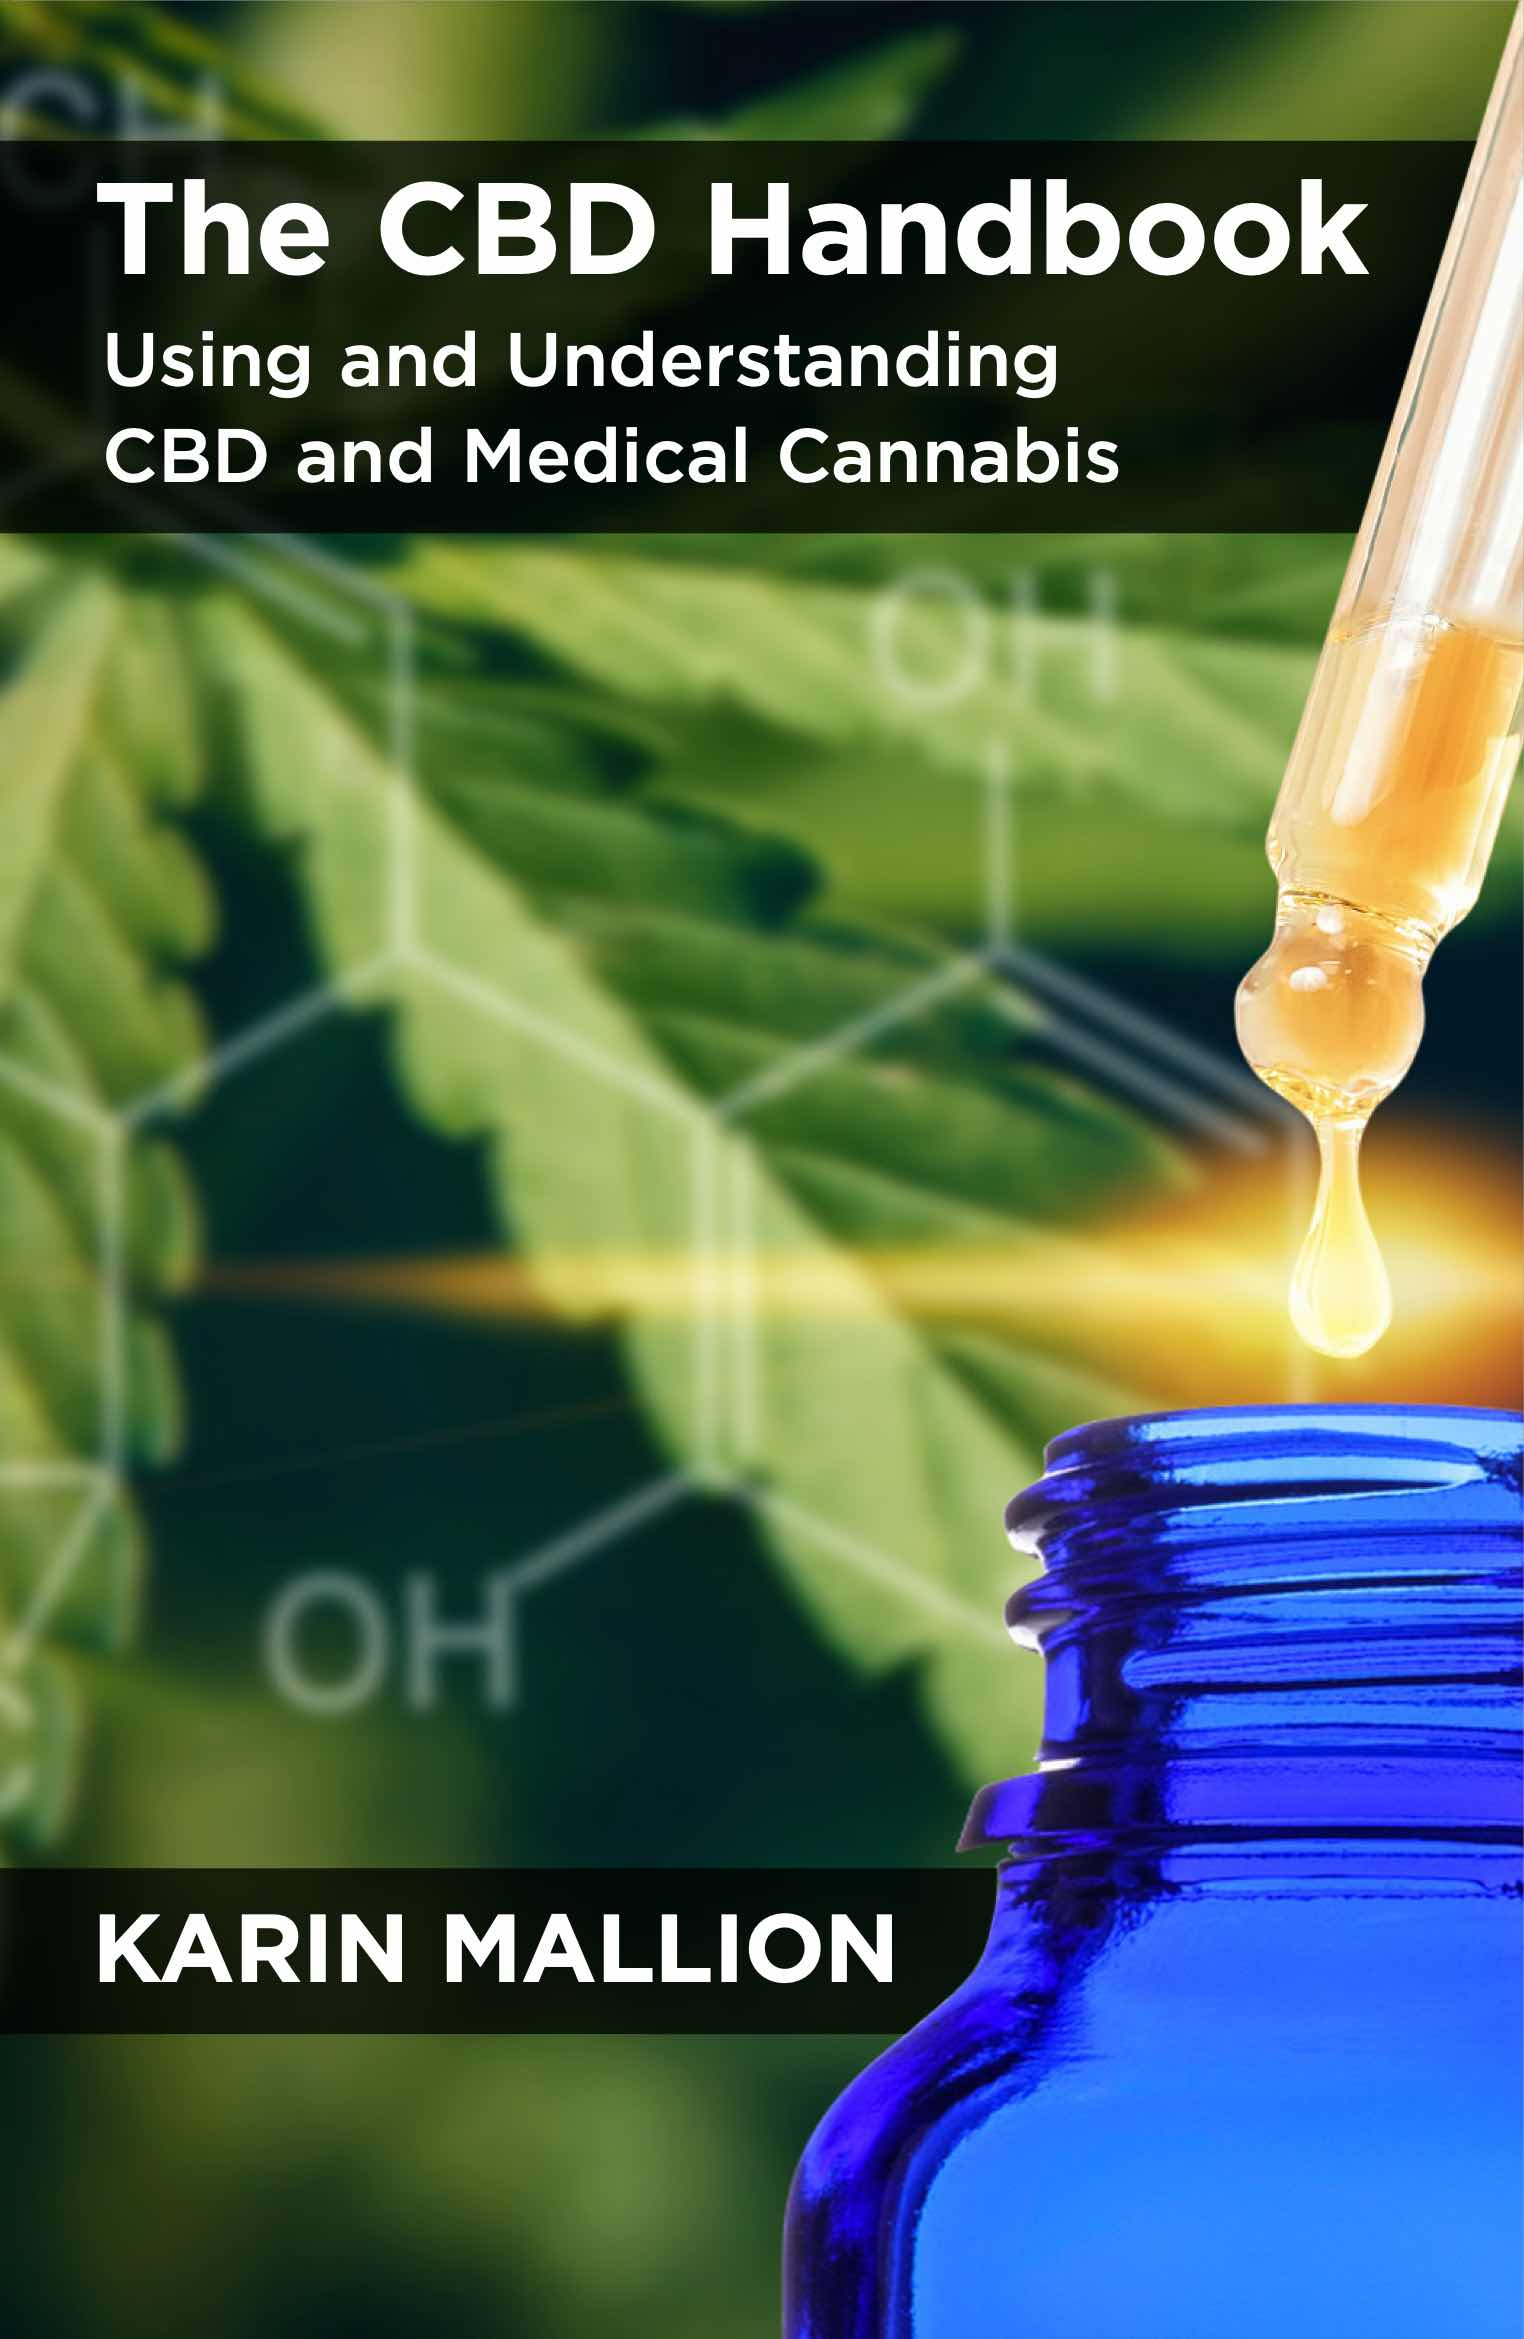 The CBD Handbook: Using and Understanding CBD and Medical Cannabis